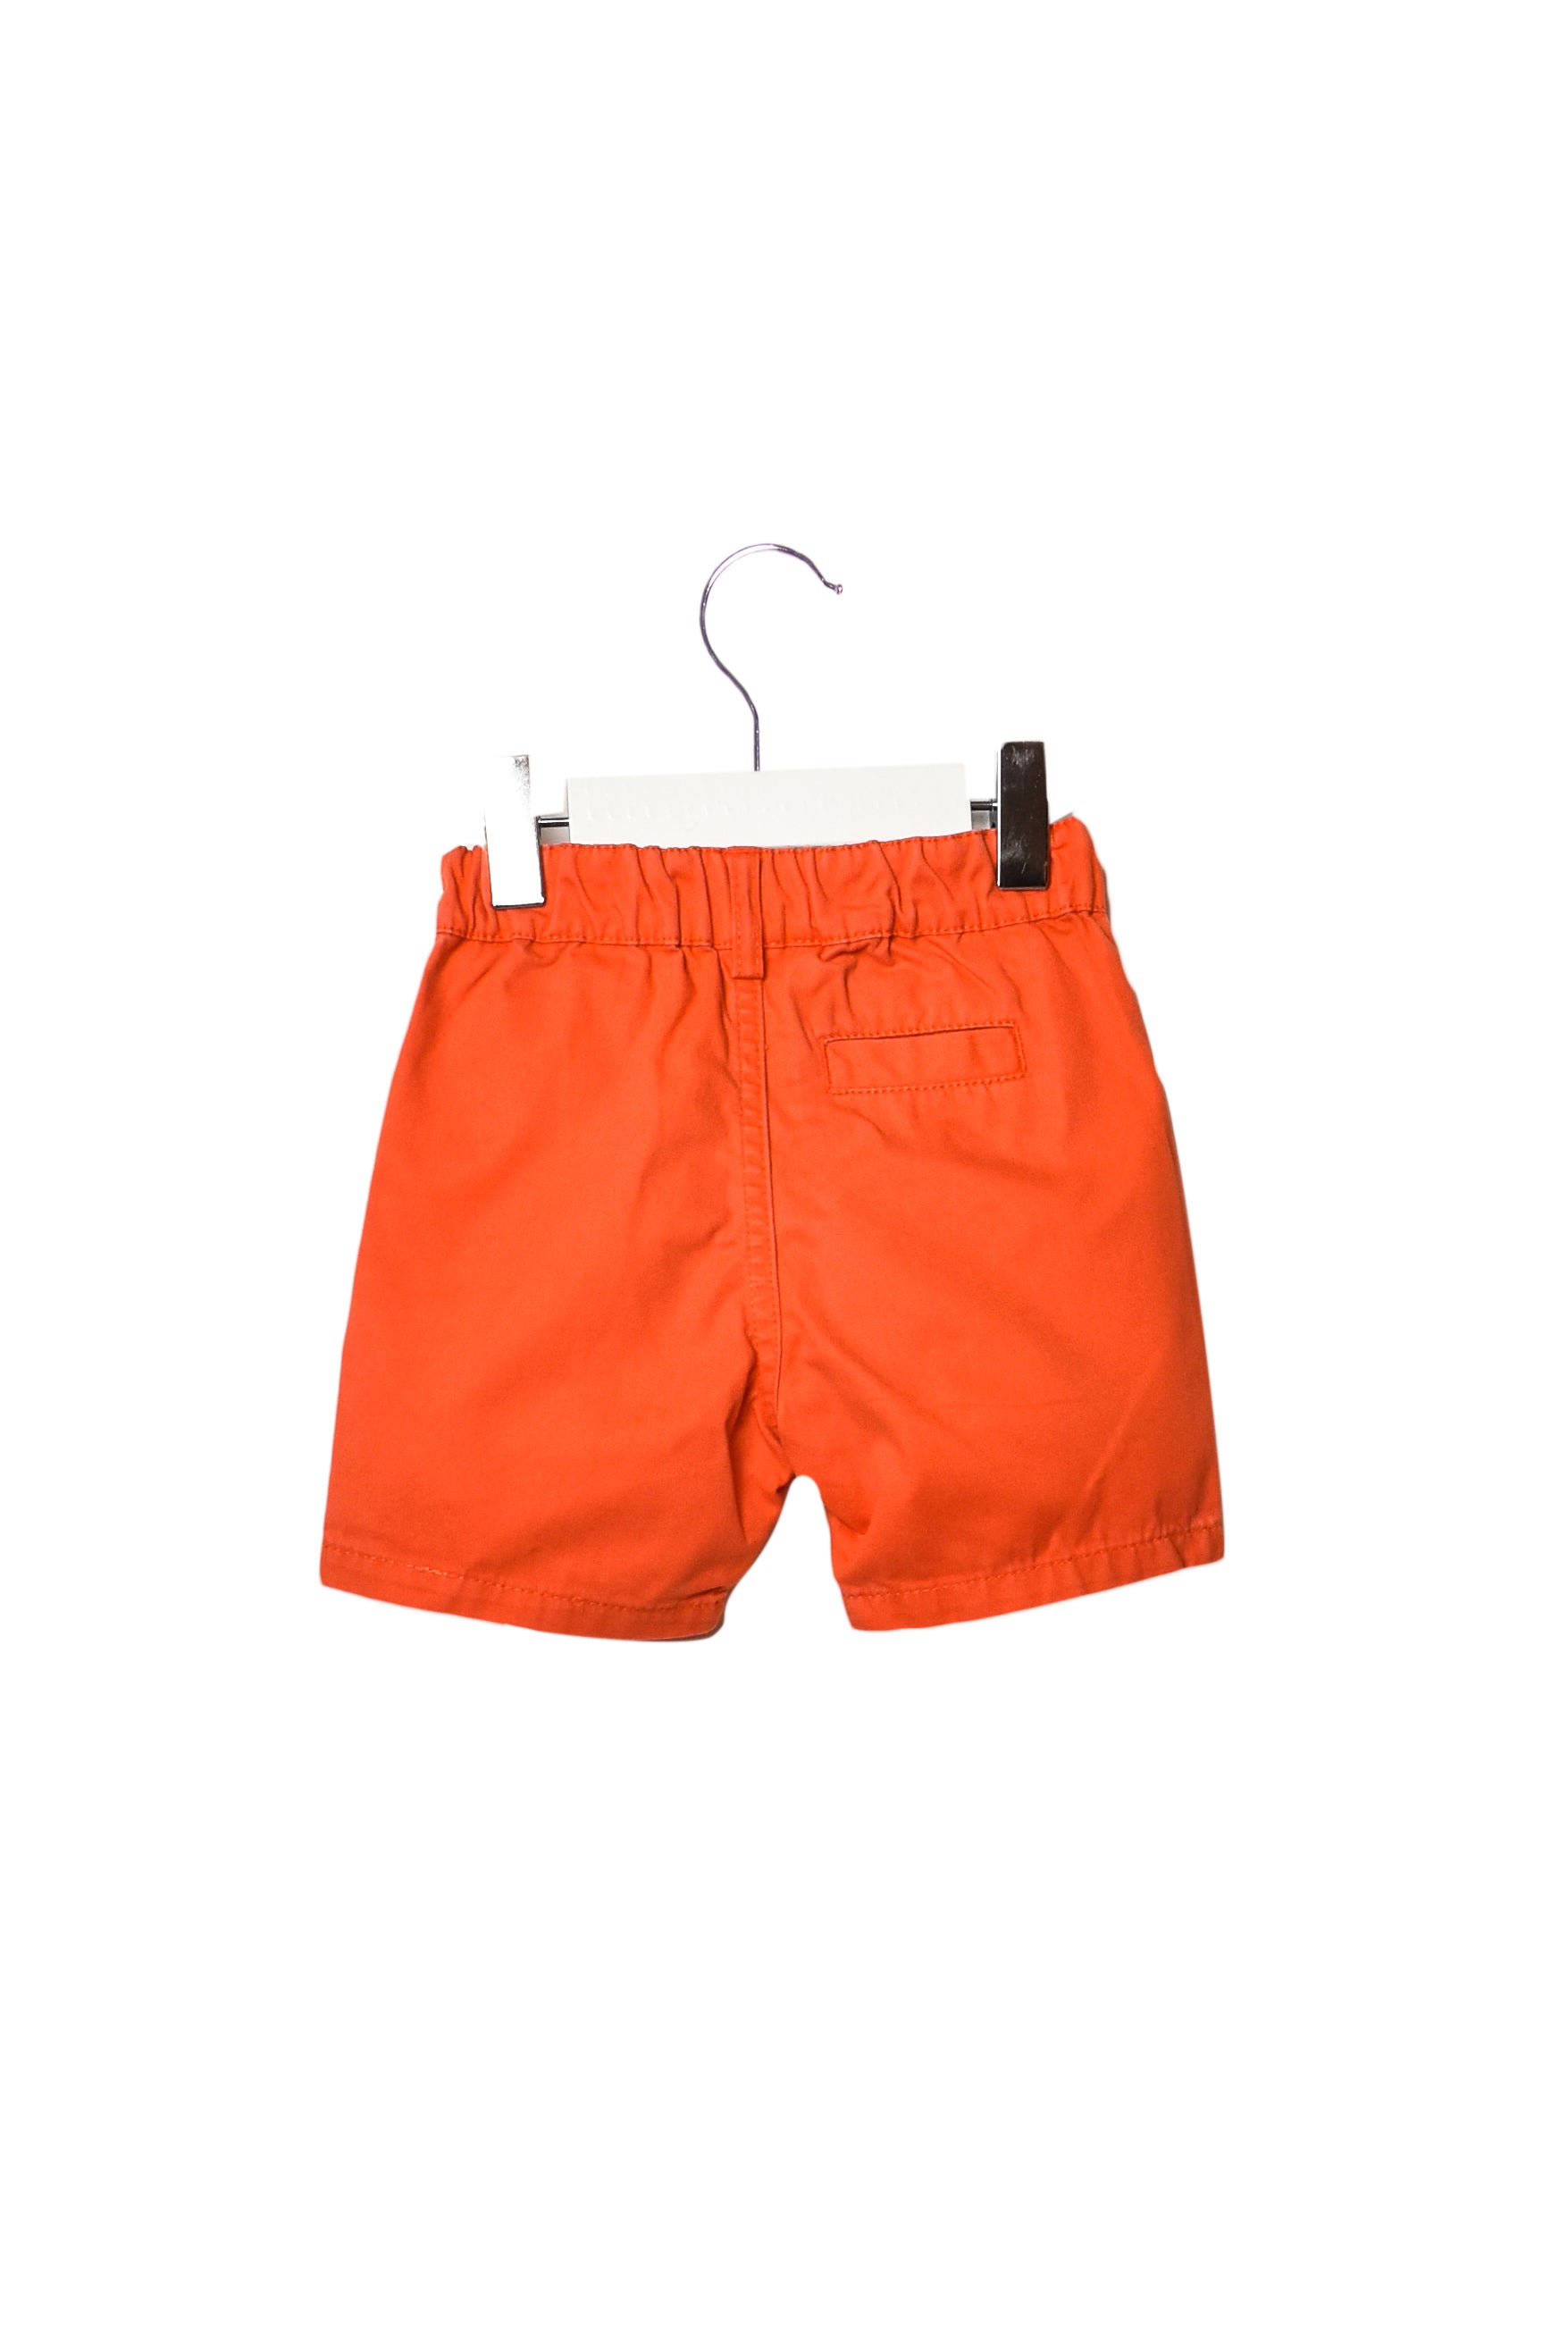 10008530 Jacadi Baby~ Shorts 12M at Retykle